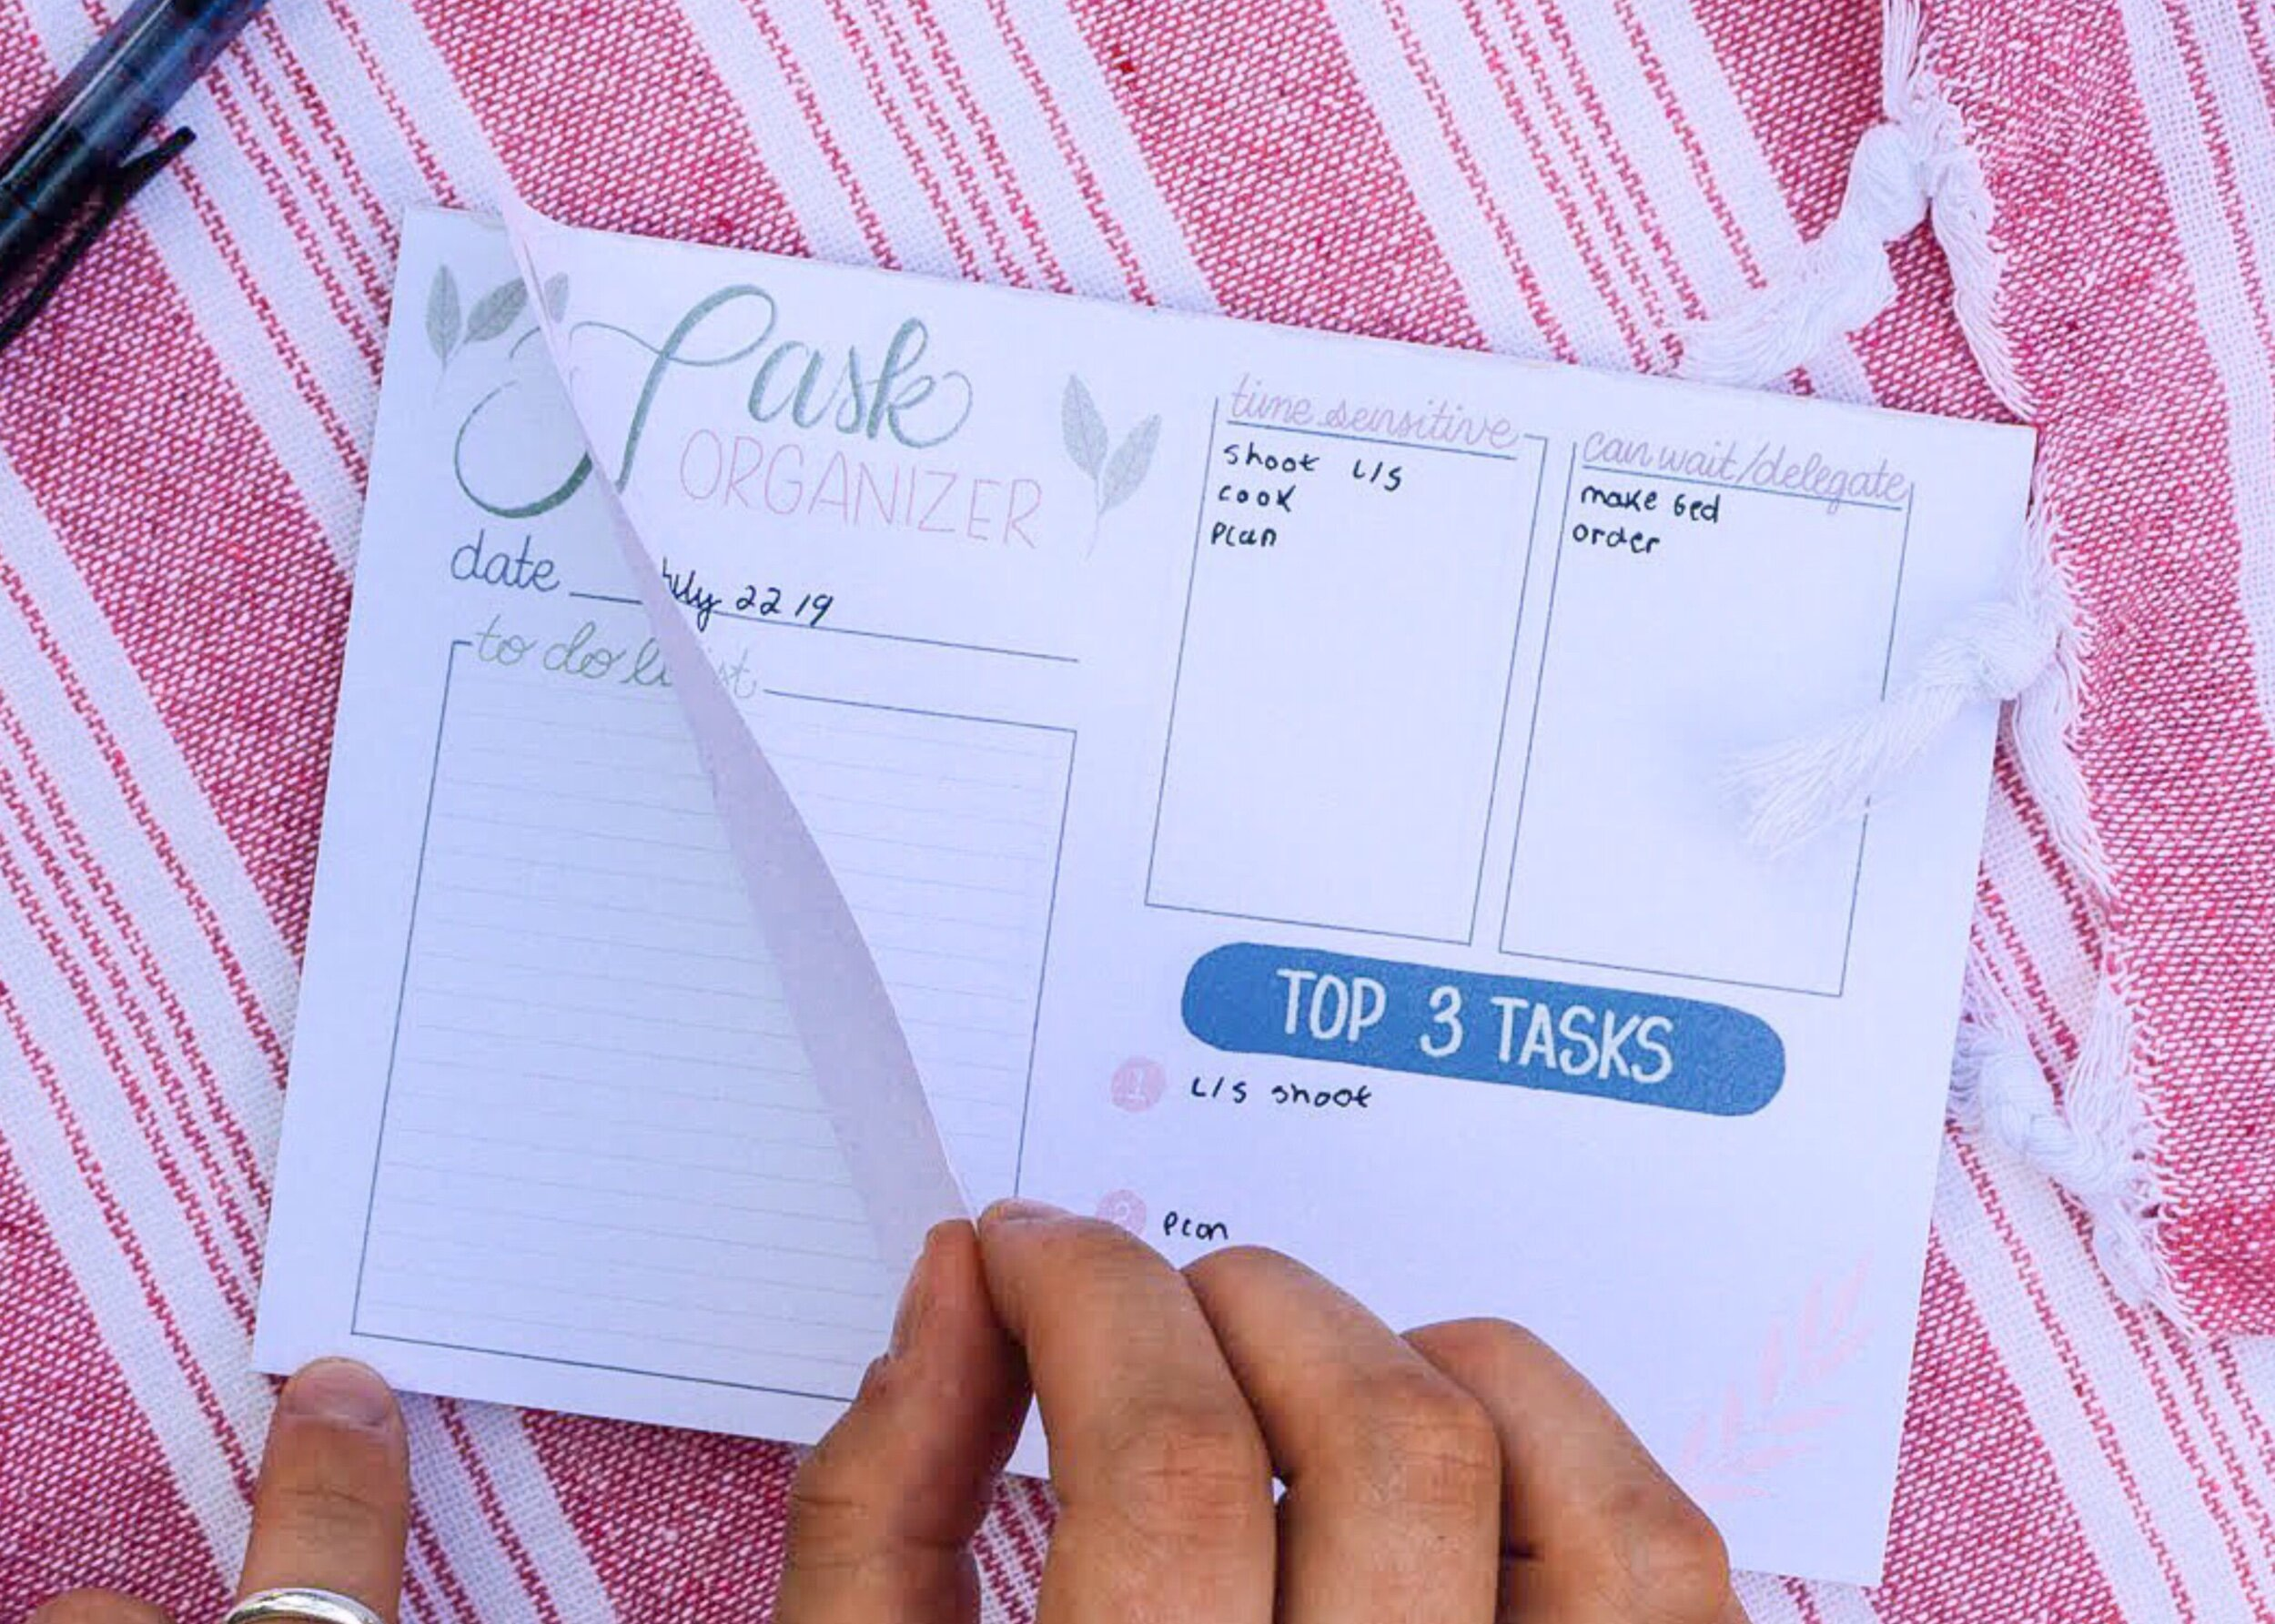 The Task Organizer Notepad was designed to help you determine which tasks actually need your attention and which will move your needle forward